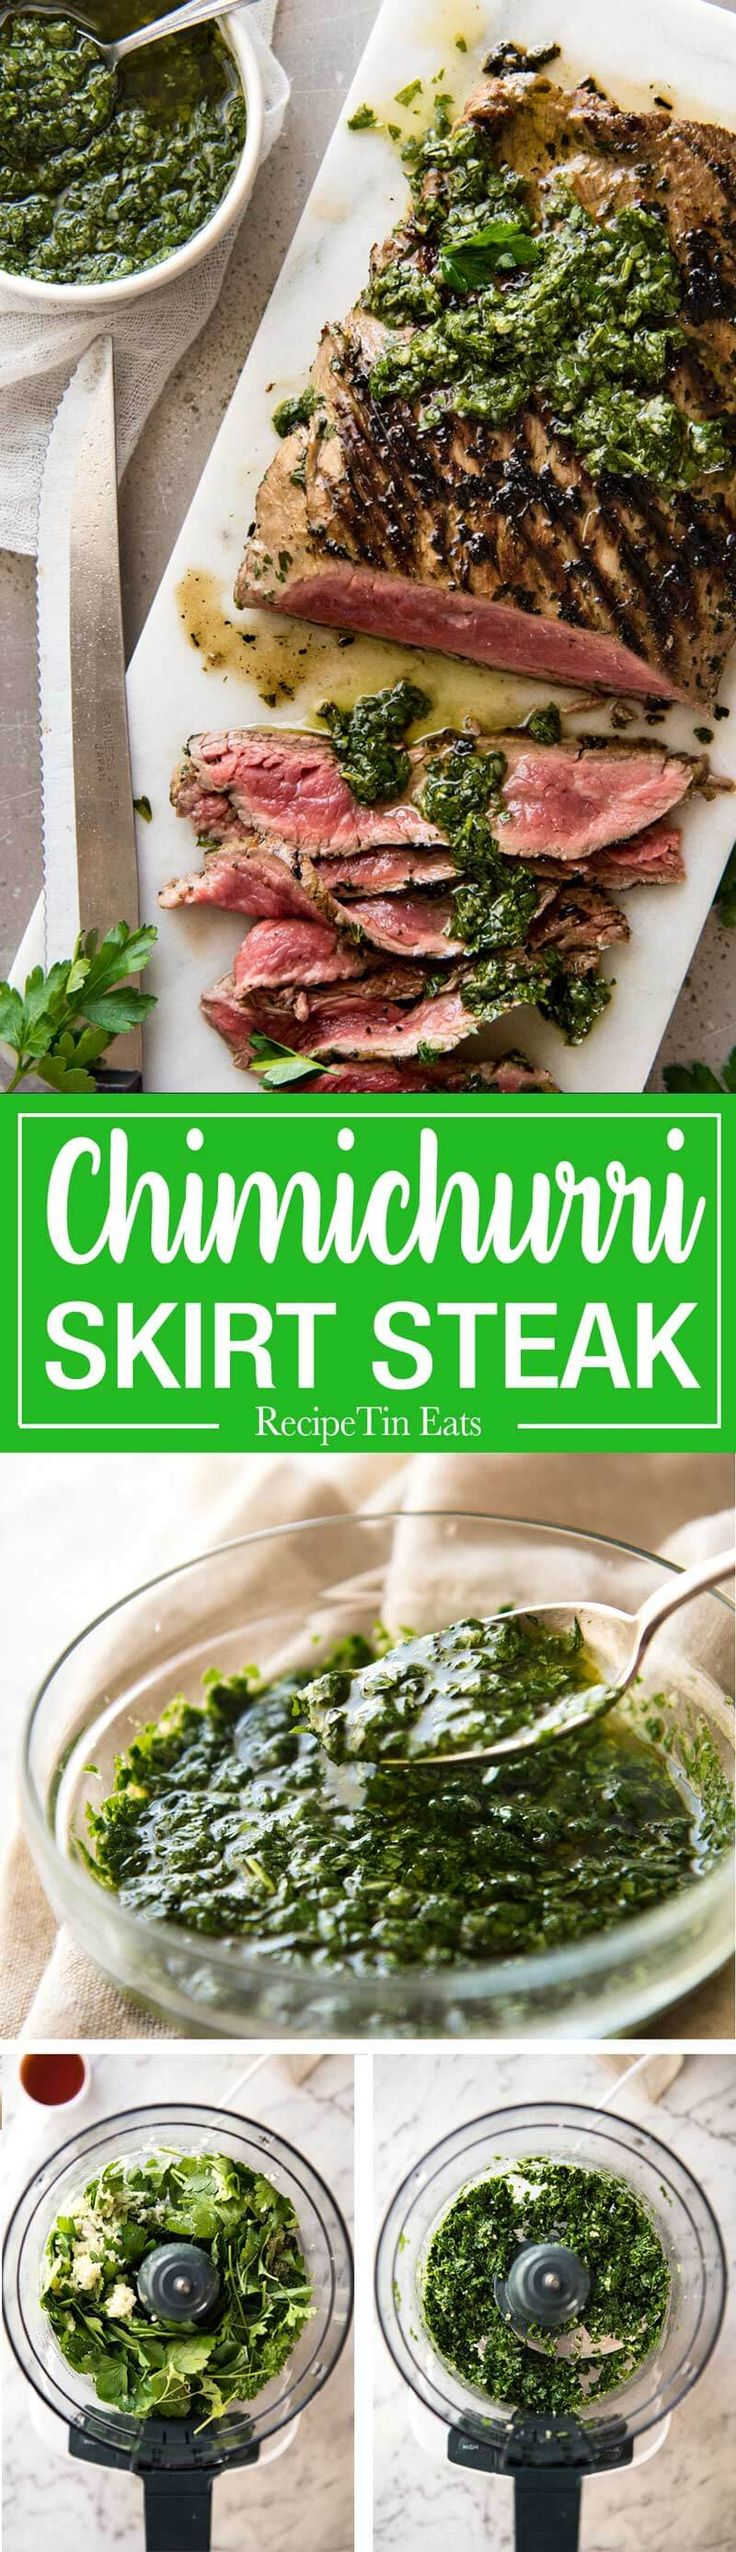 Chimichurri Steak with Chimichurri Sauce - Parsley, oregano, red wine vinegar… (Lucilles Apple Butter)